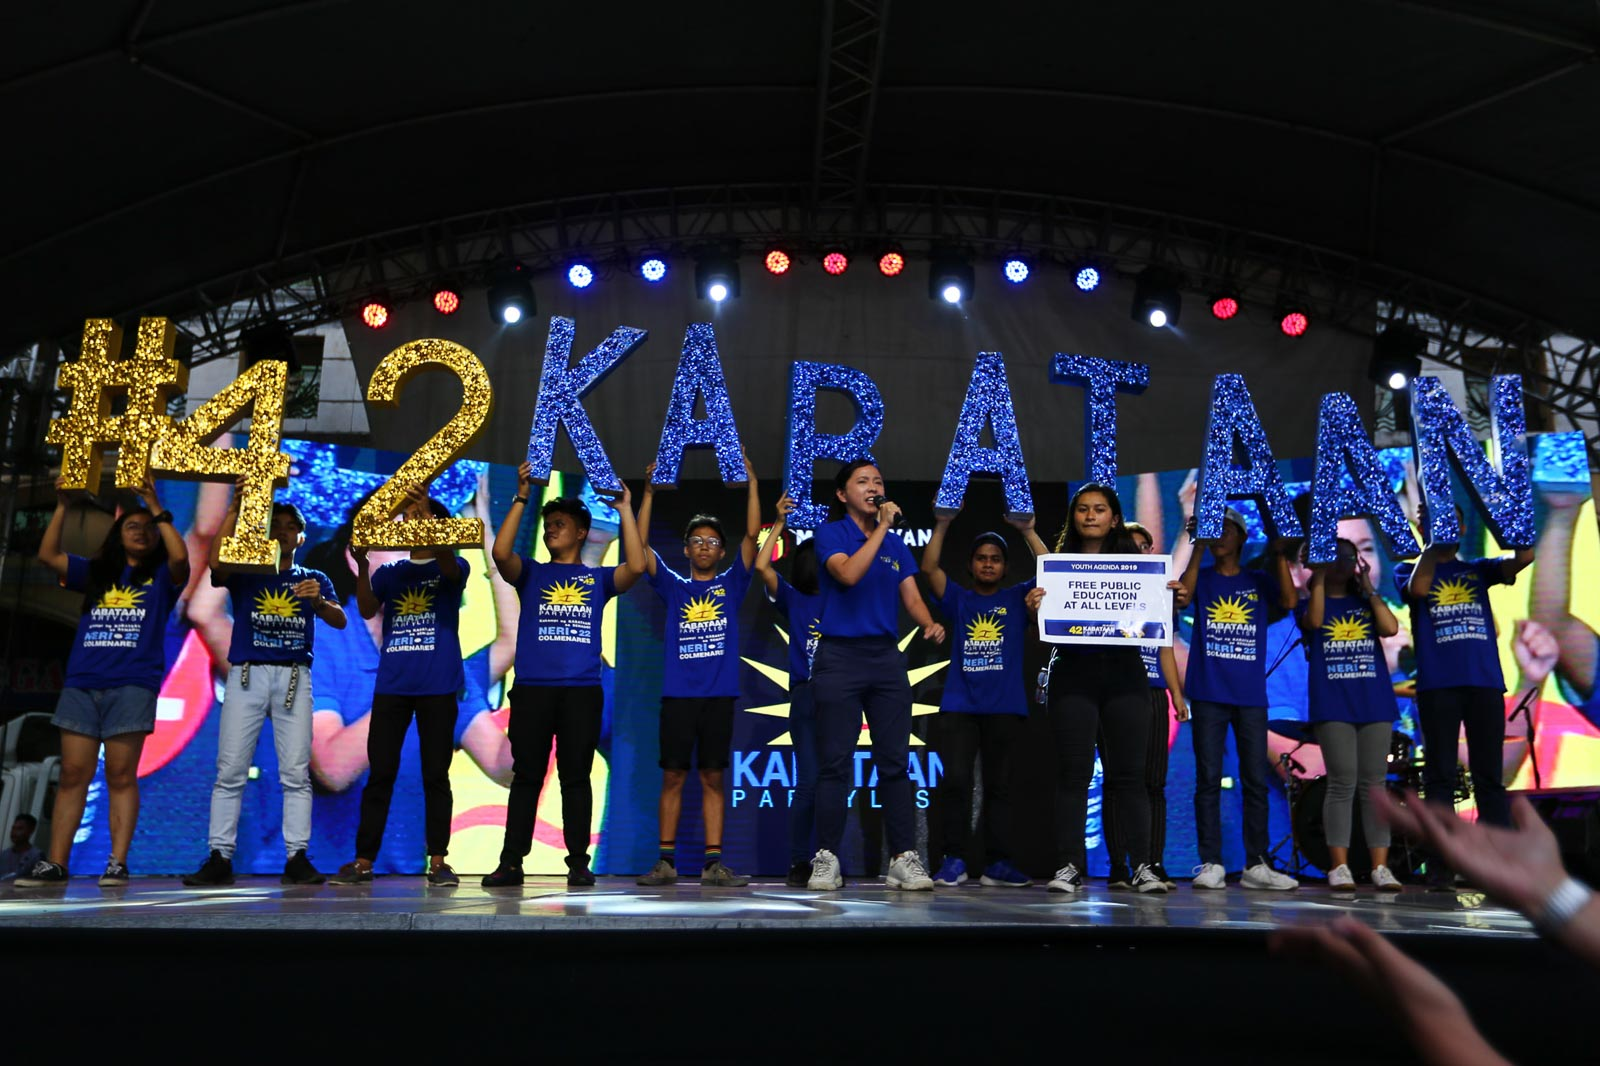 LAST SPOT. Kabataan current representative and first nominee Sarah Elago, clinched the last spot among party-list winners. Photo by Jire Carreon/Rappler